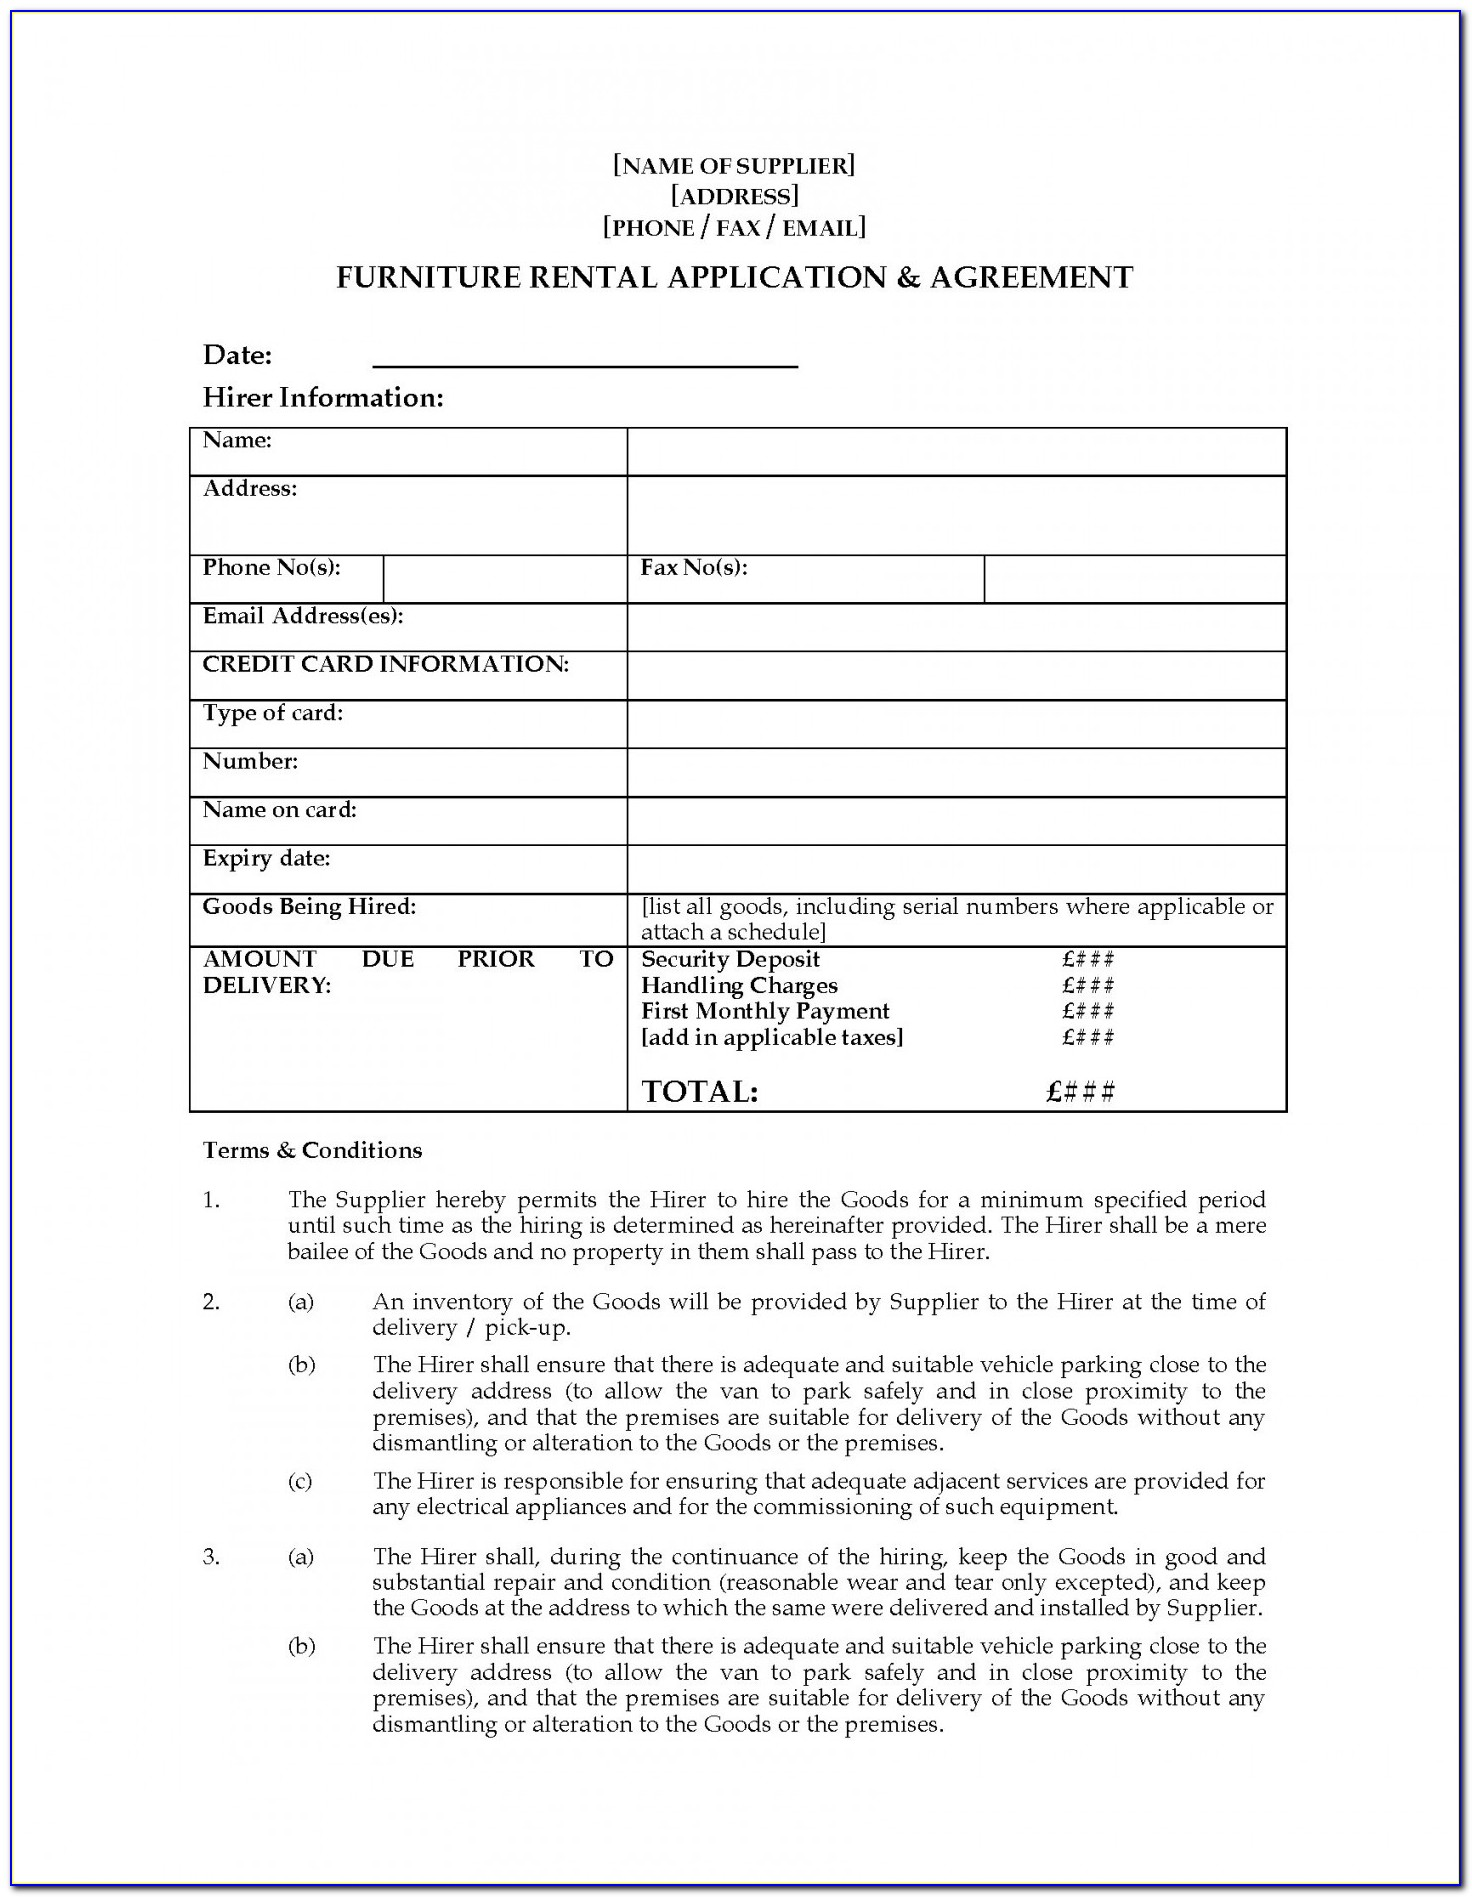 Furniture Lease Agreement Template Pic 49 Good Furniture Rental Agreement Template Word Pe D67958